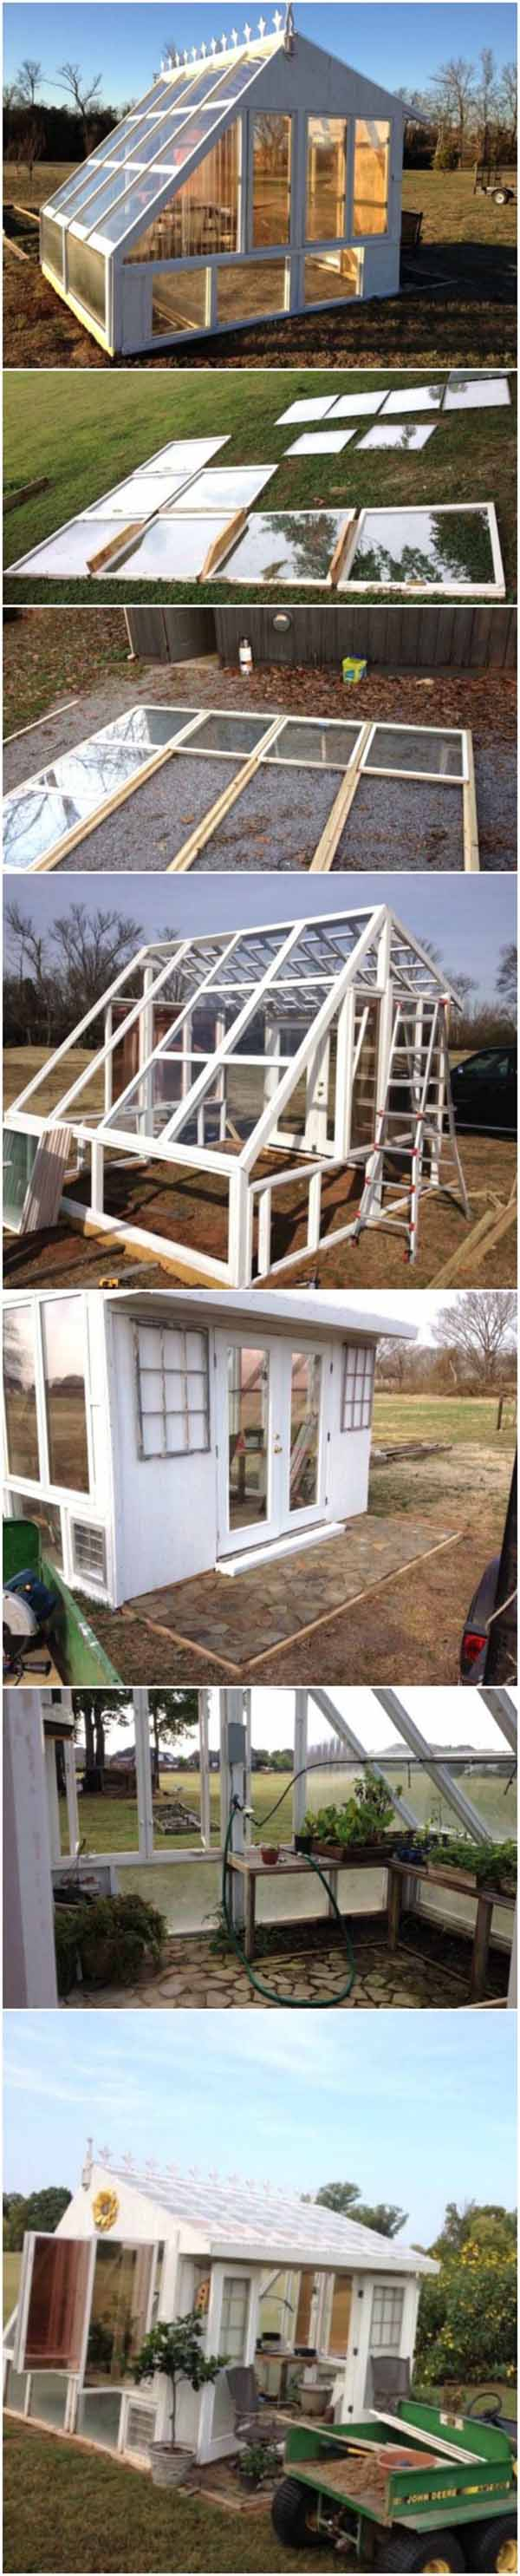 A DIY Greenhouse that's easy to Create | Build a beautiful outdoor greenhouse | Creative Greenhouse DIY plans